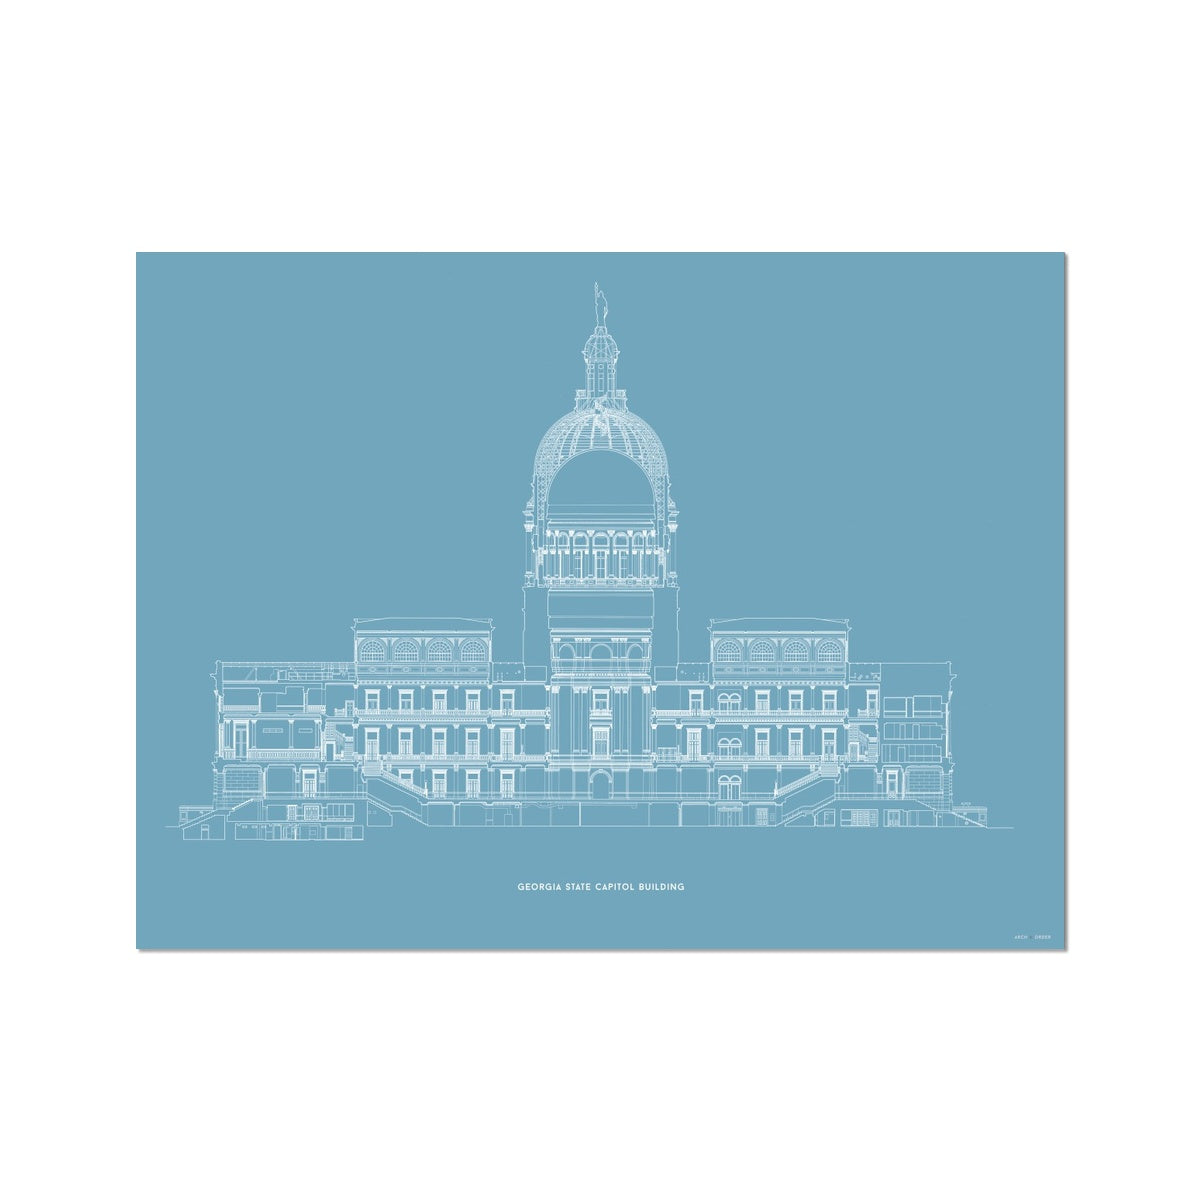 The Georgia State Capitol Building - West Elevation Cross Section - Blue - German Etching Print